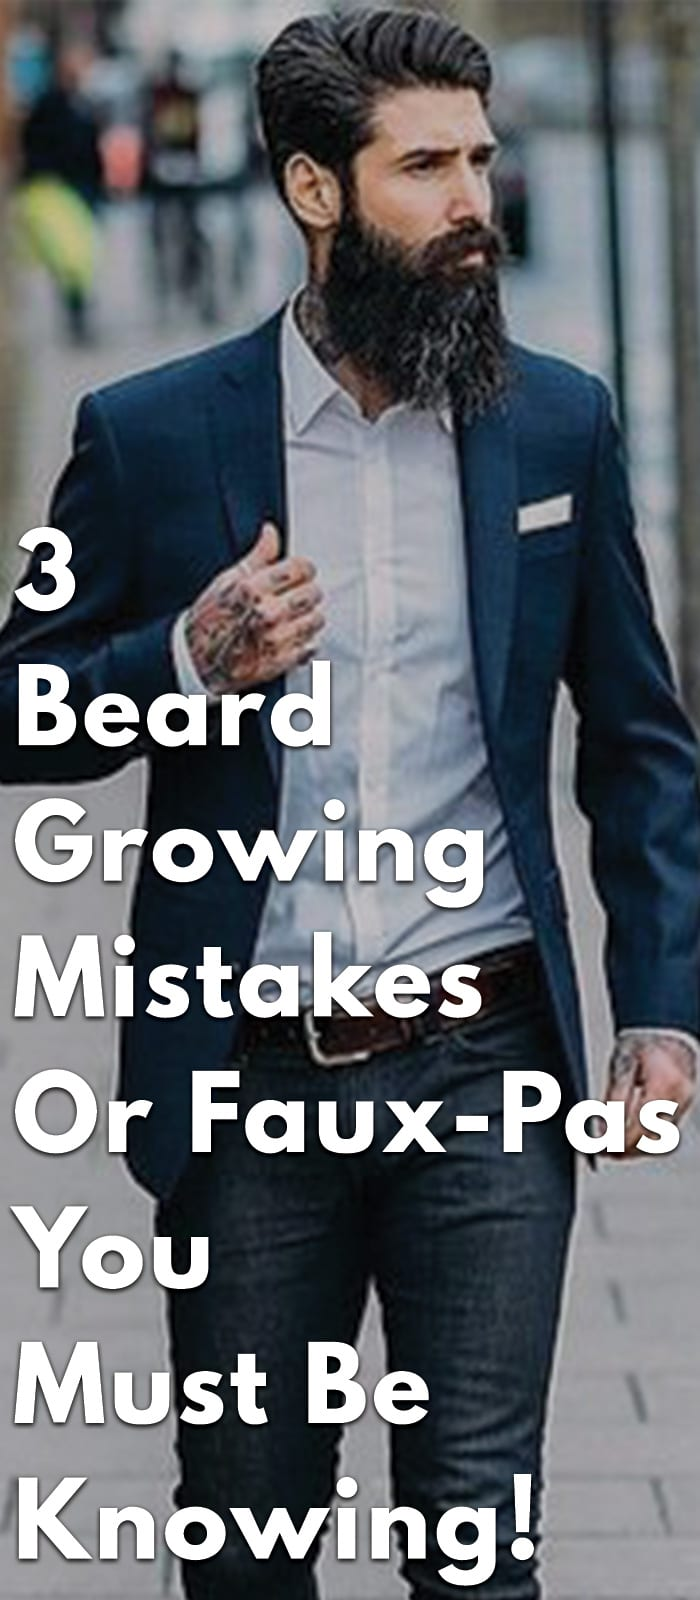 3-Beard-Growing-Mistakes-Or-Faux-Pas-You-Must-Be-Knowing!